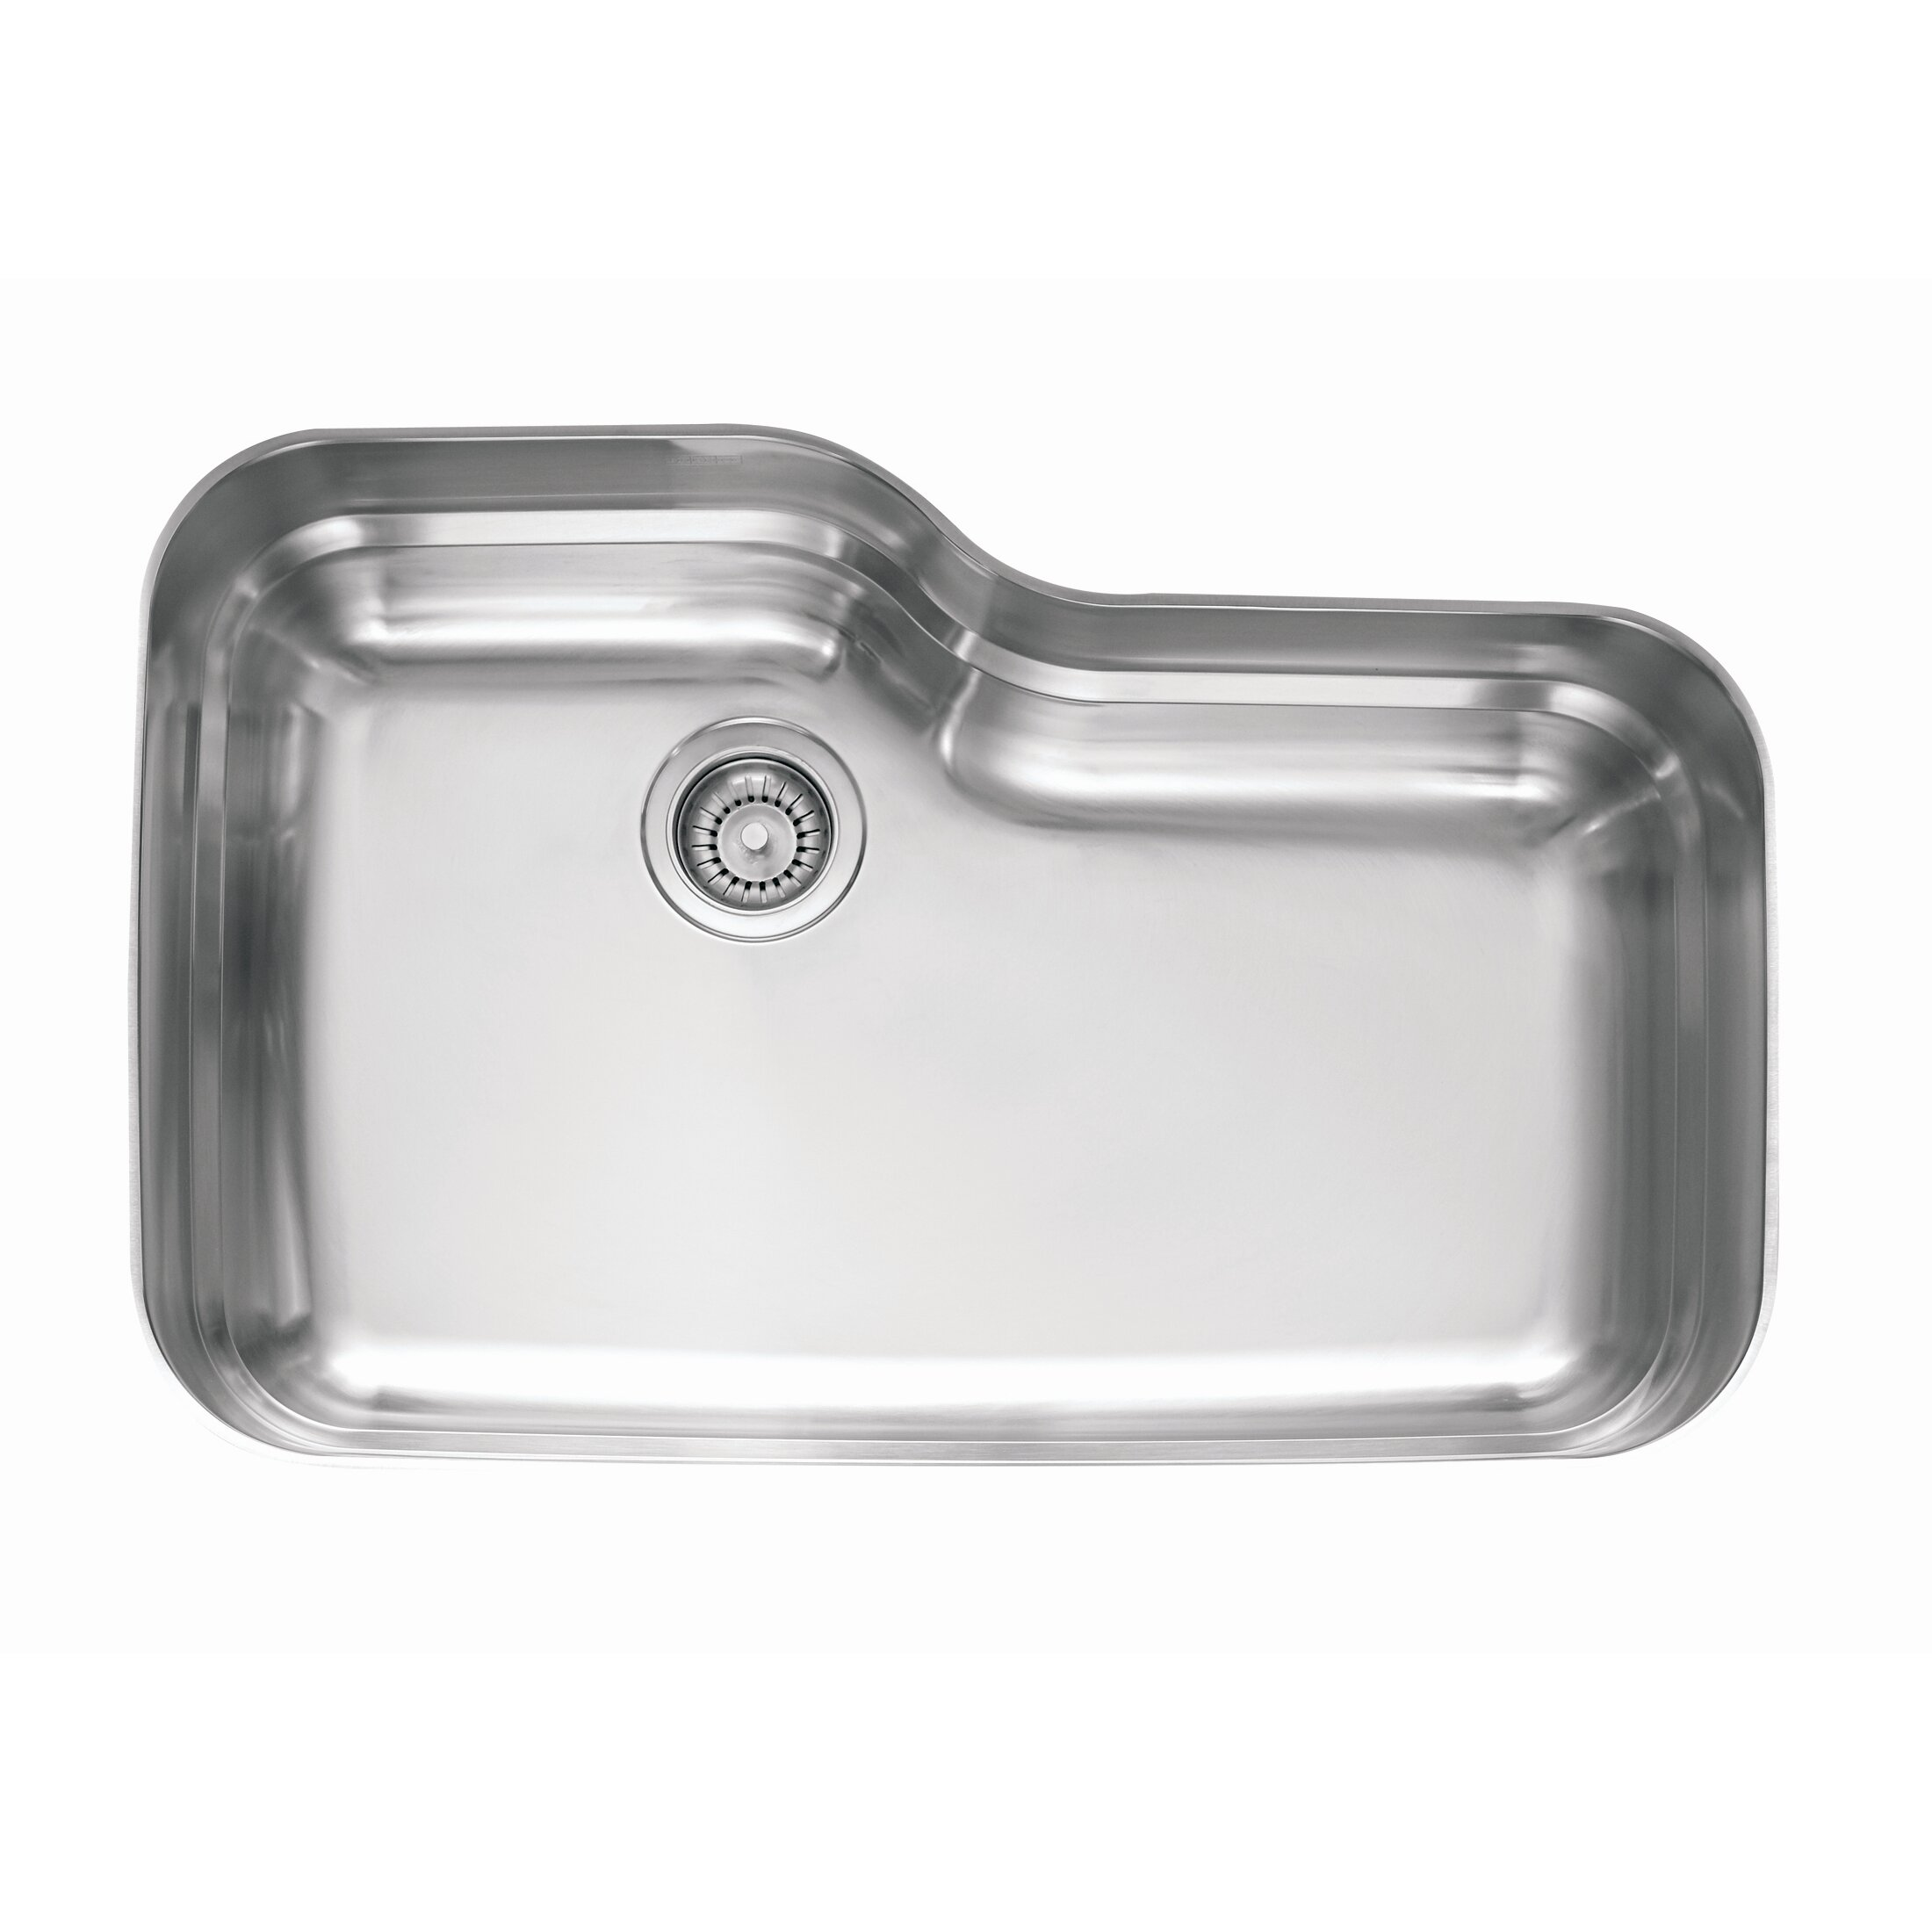 Undermount Sink Franke : Orca 30.69